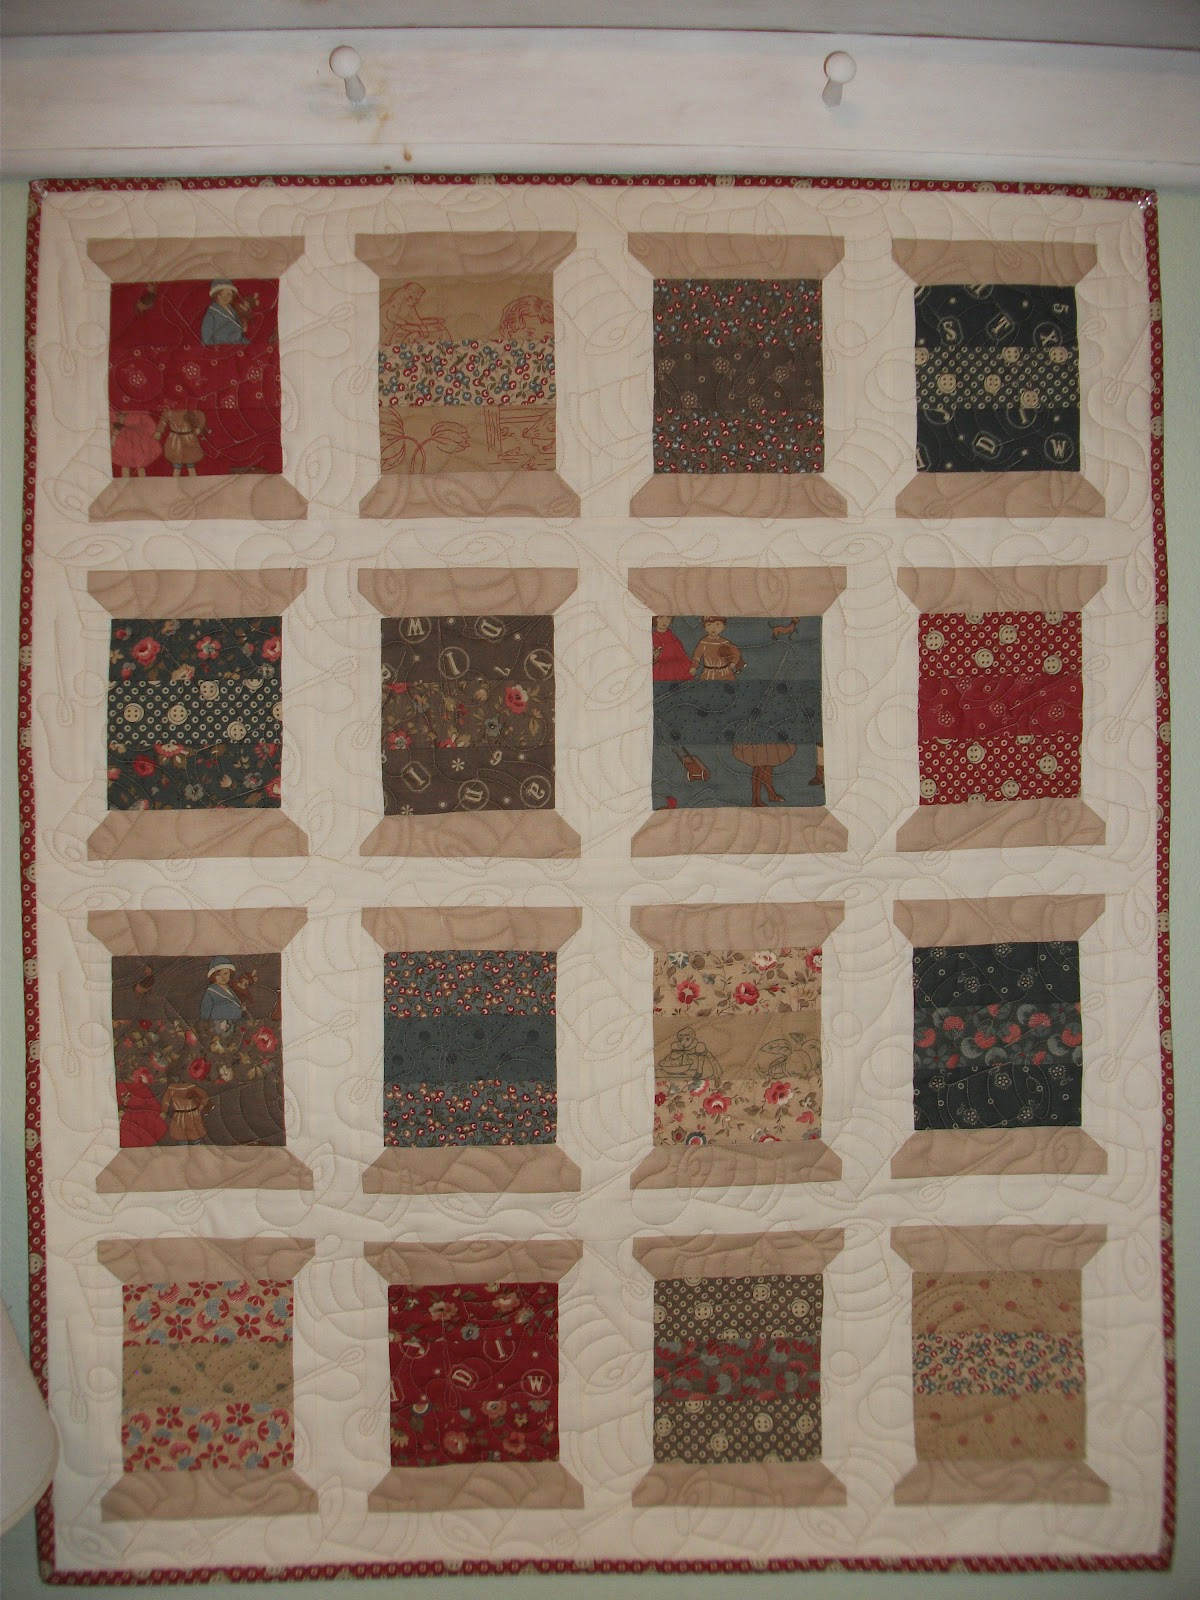 Quilt Pattern Spool of Thread http://cozylittlequilts.blogspot.com/2012/09/petite-odile-spools-quilt-finish_19.html